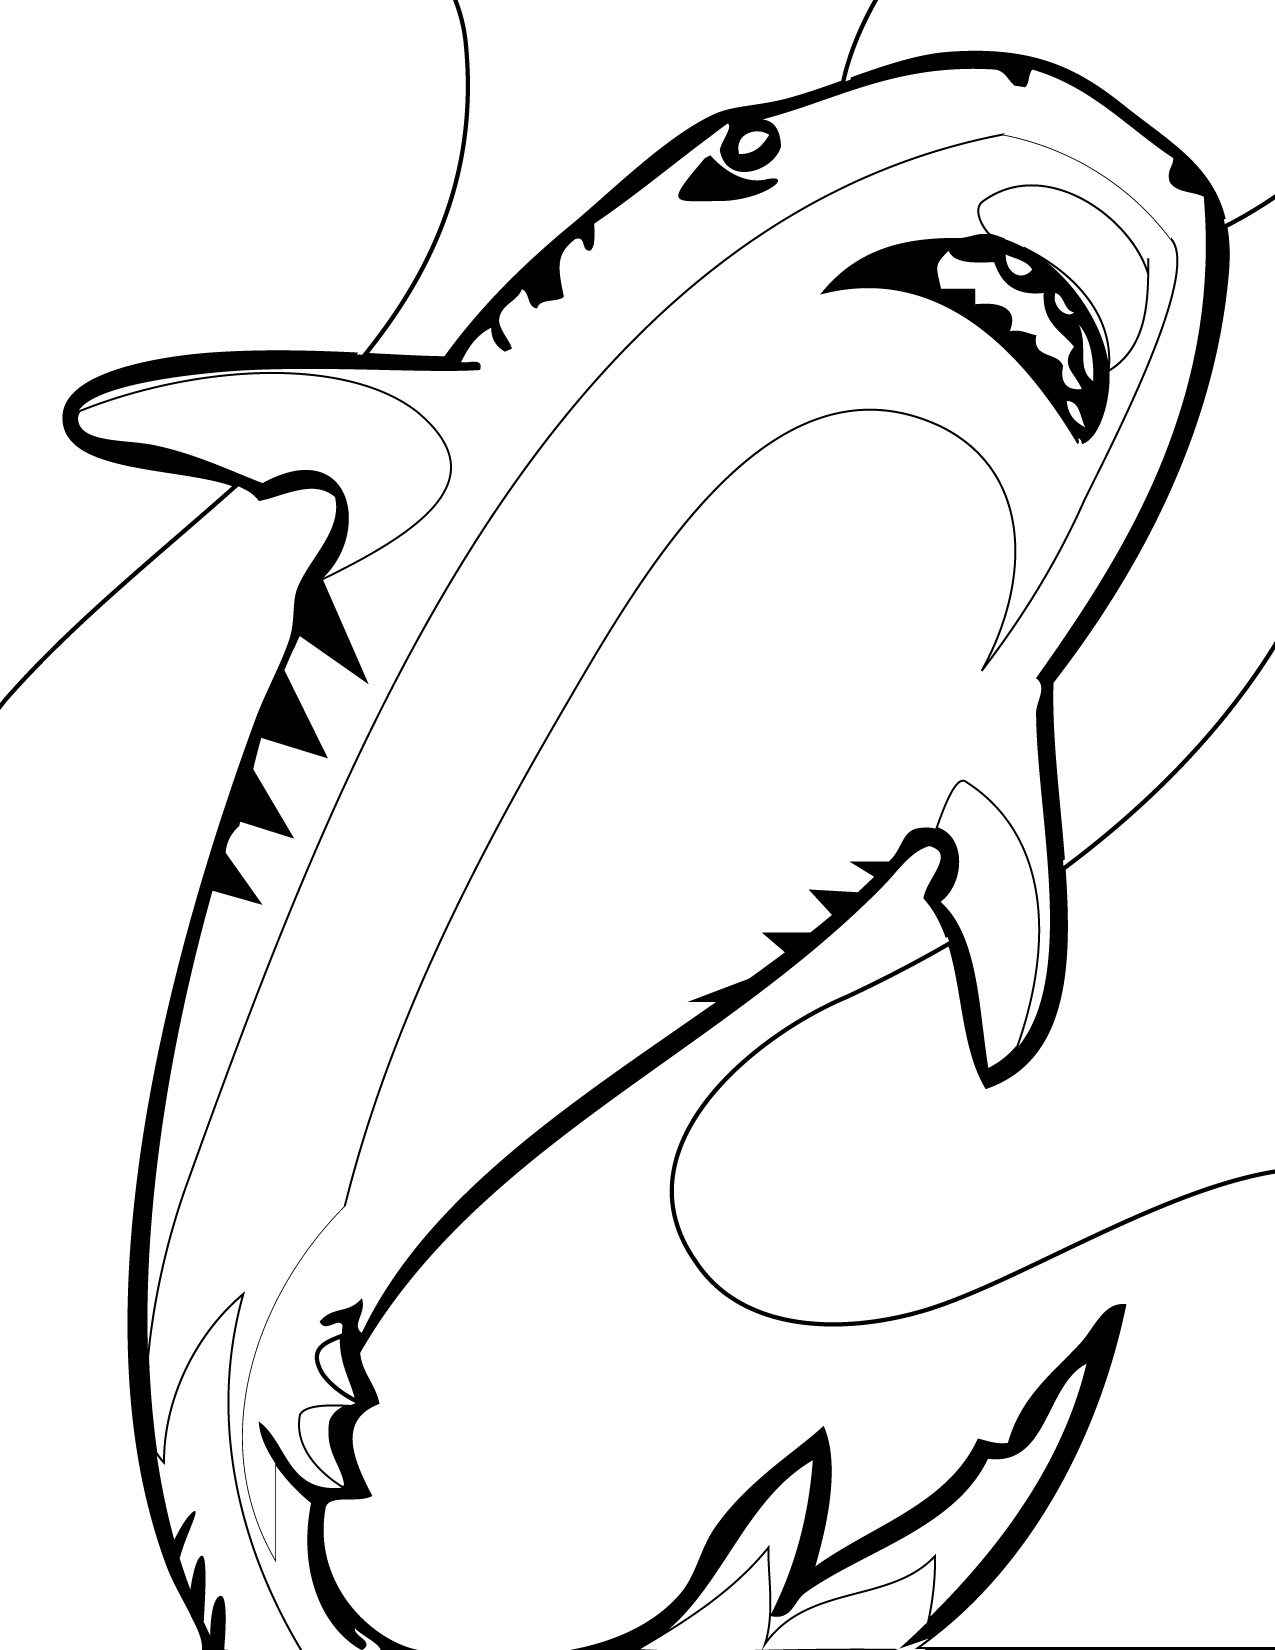 1275x1650 Shark Coloring Pages Lovely Bull Shark Coloring Page Logo